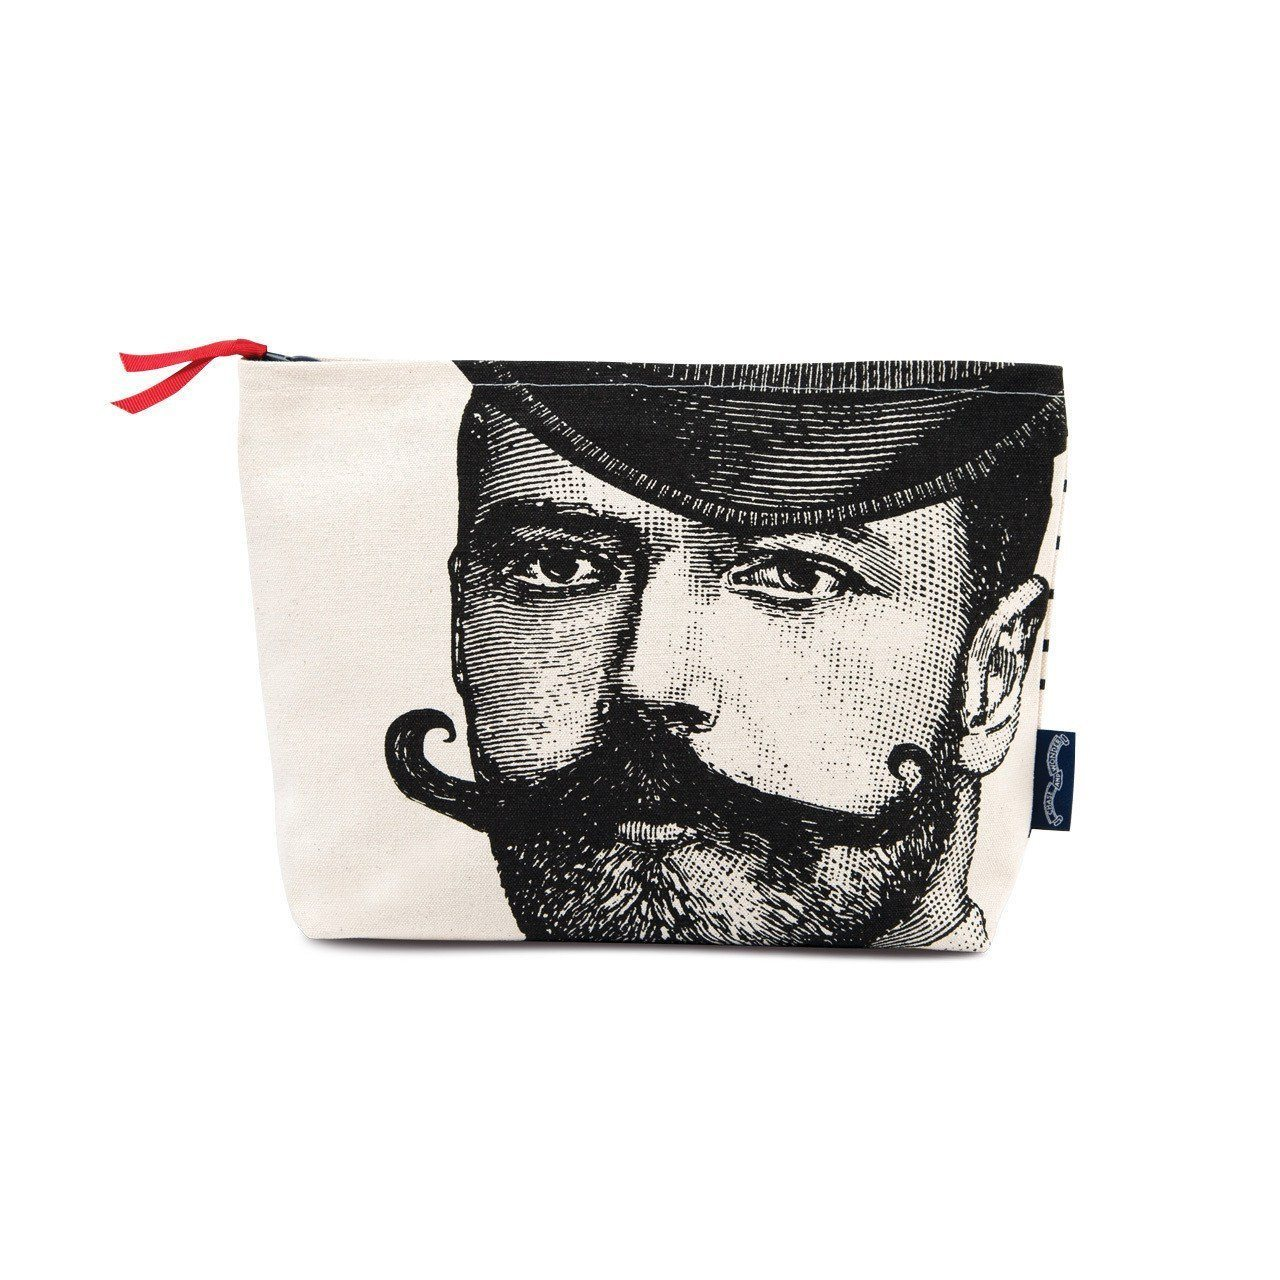 A Dashing Gentleman's Wash Bag - Chase and Wonder - Proudly Made in Britain